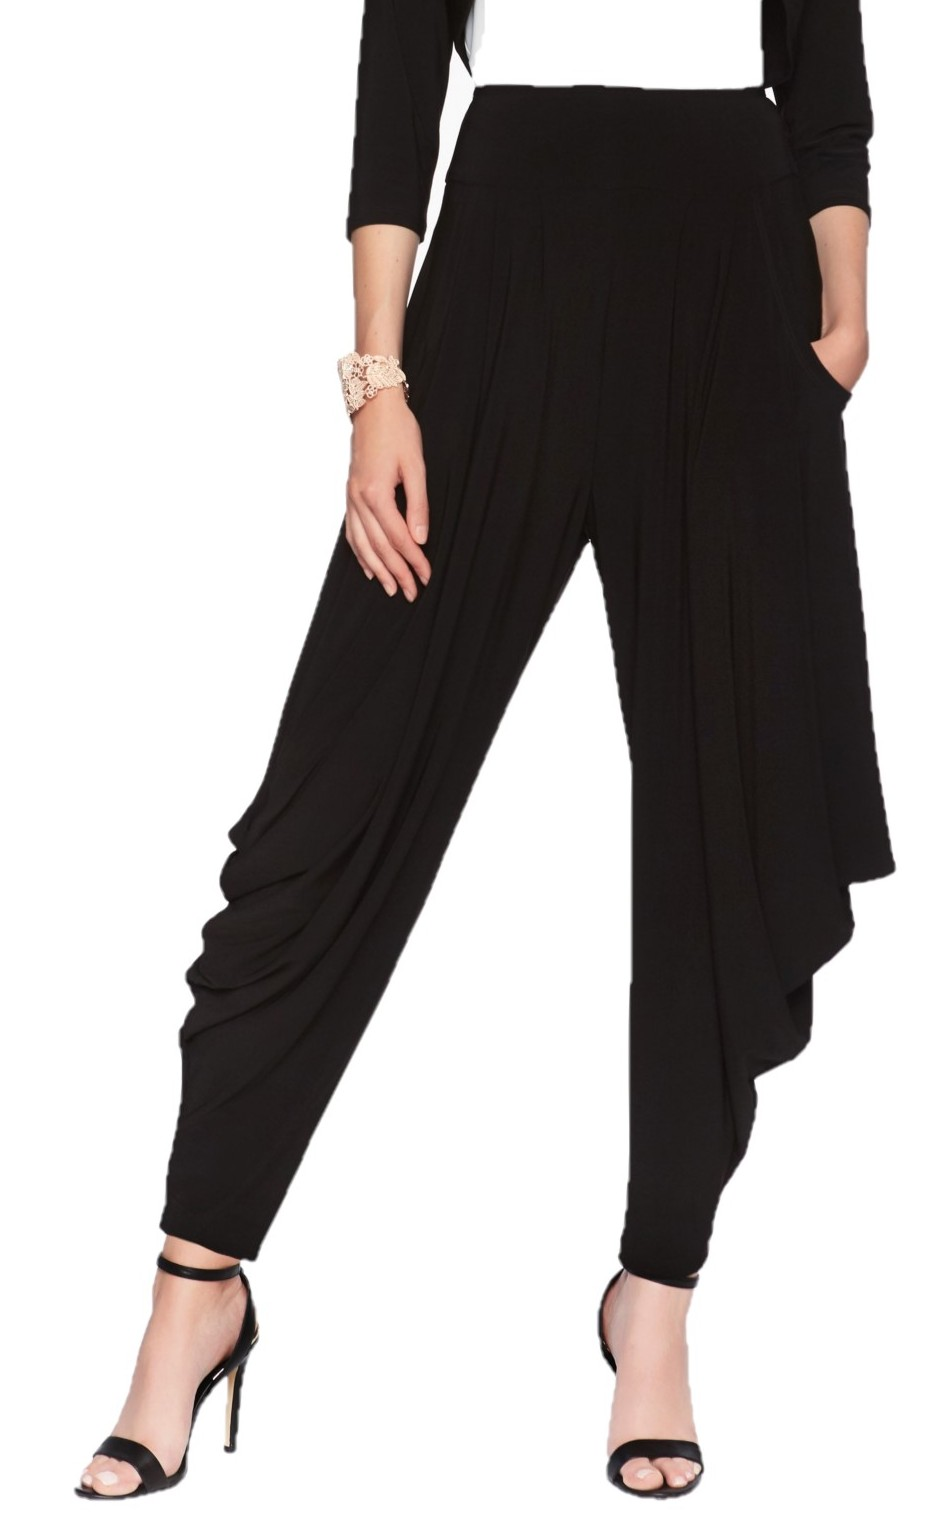 Frank Lyman Womens Pull On Pant Style 01077, Color Black